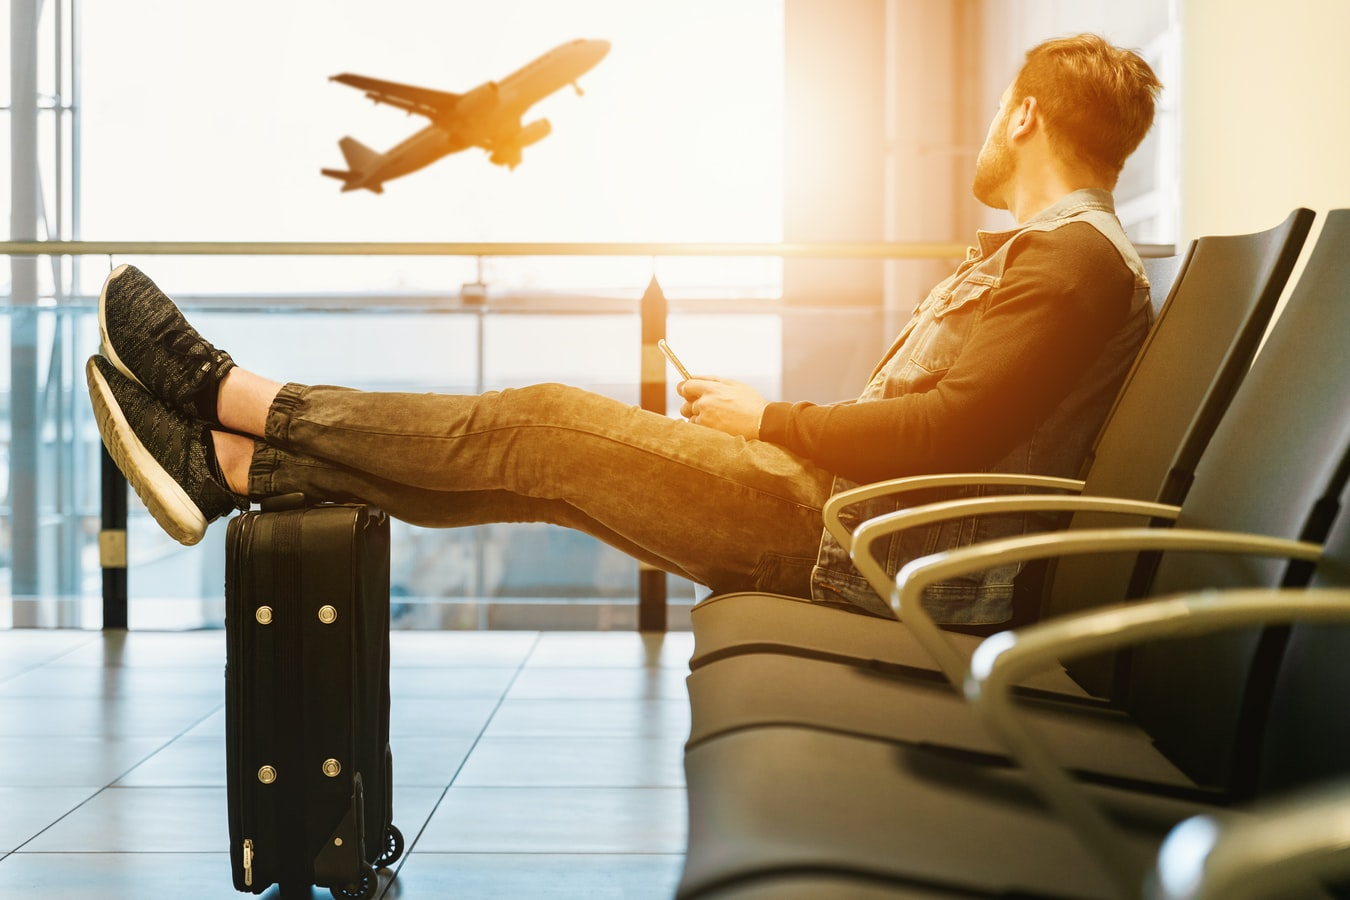 man at airport looking at plane take off